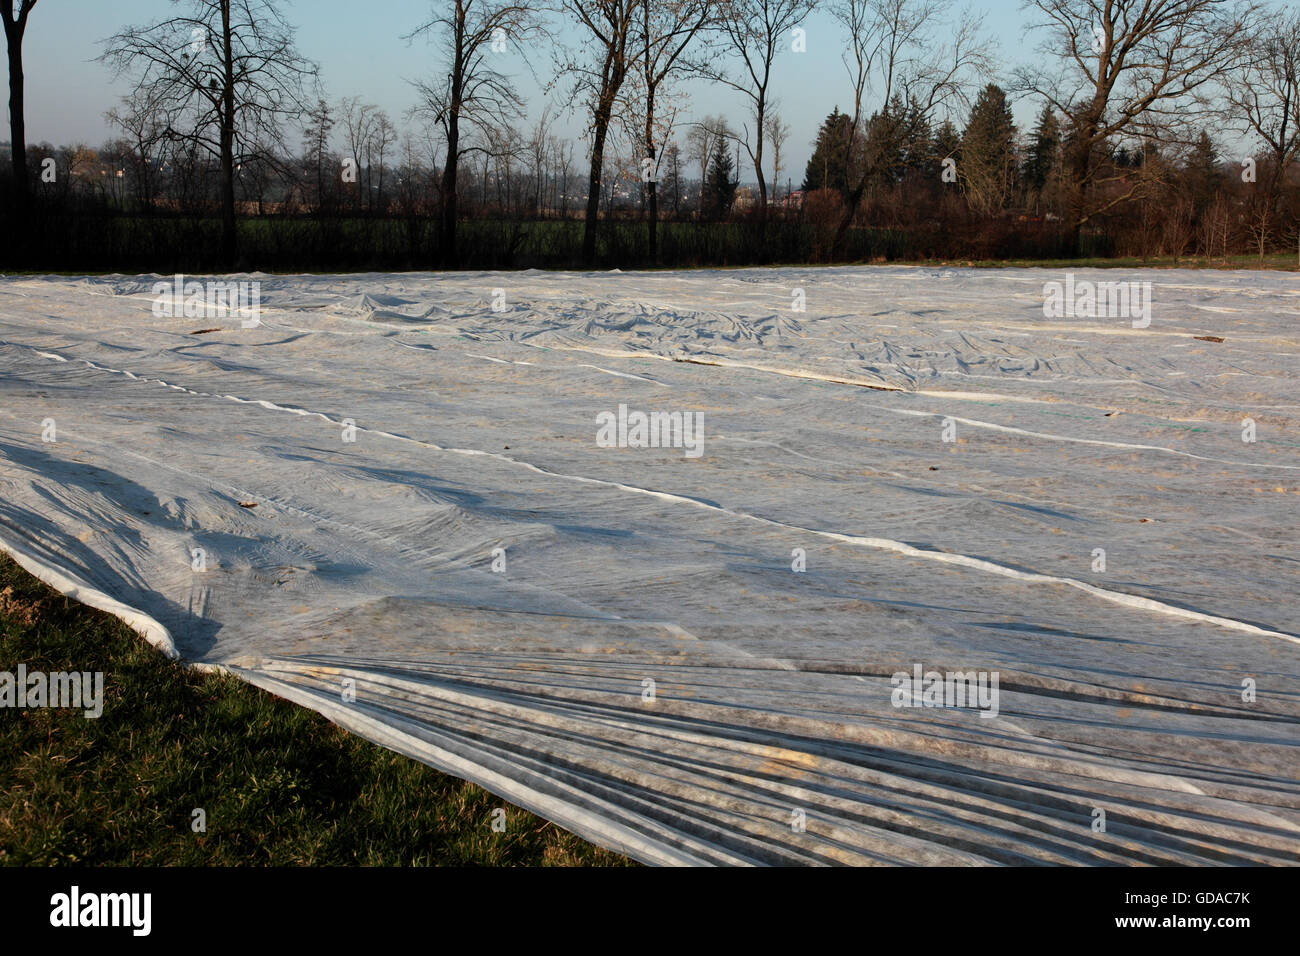 Plastic sheeting over fields in Therwil, Basel, Switzerland - Stock Image